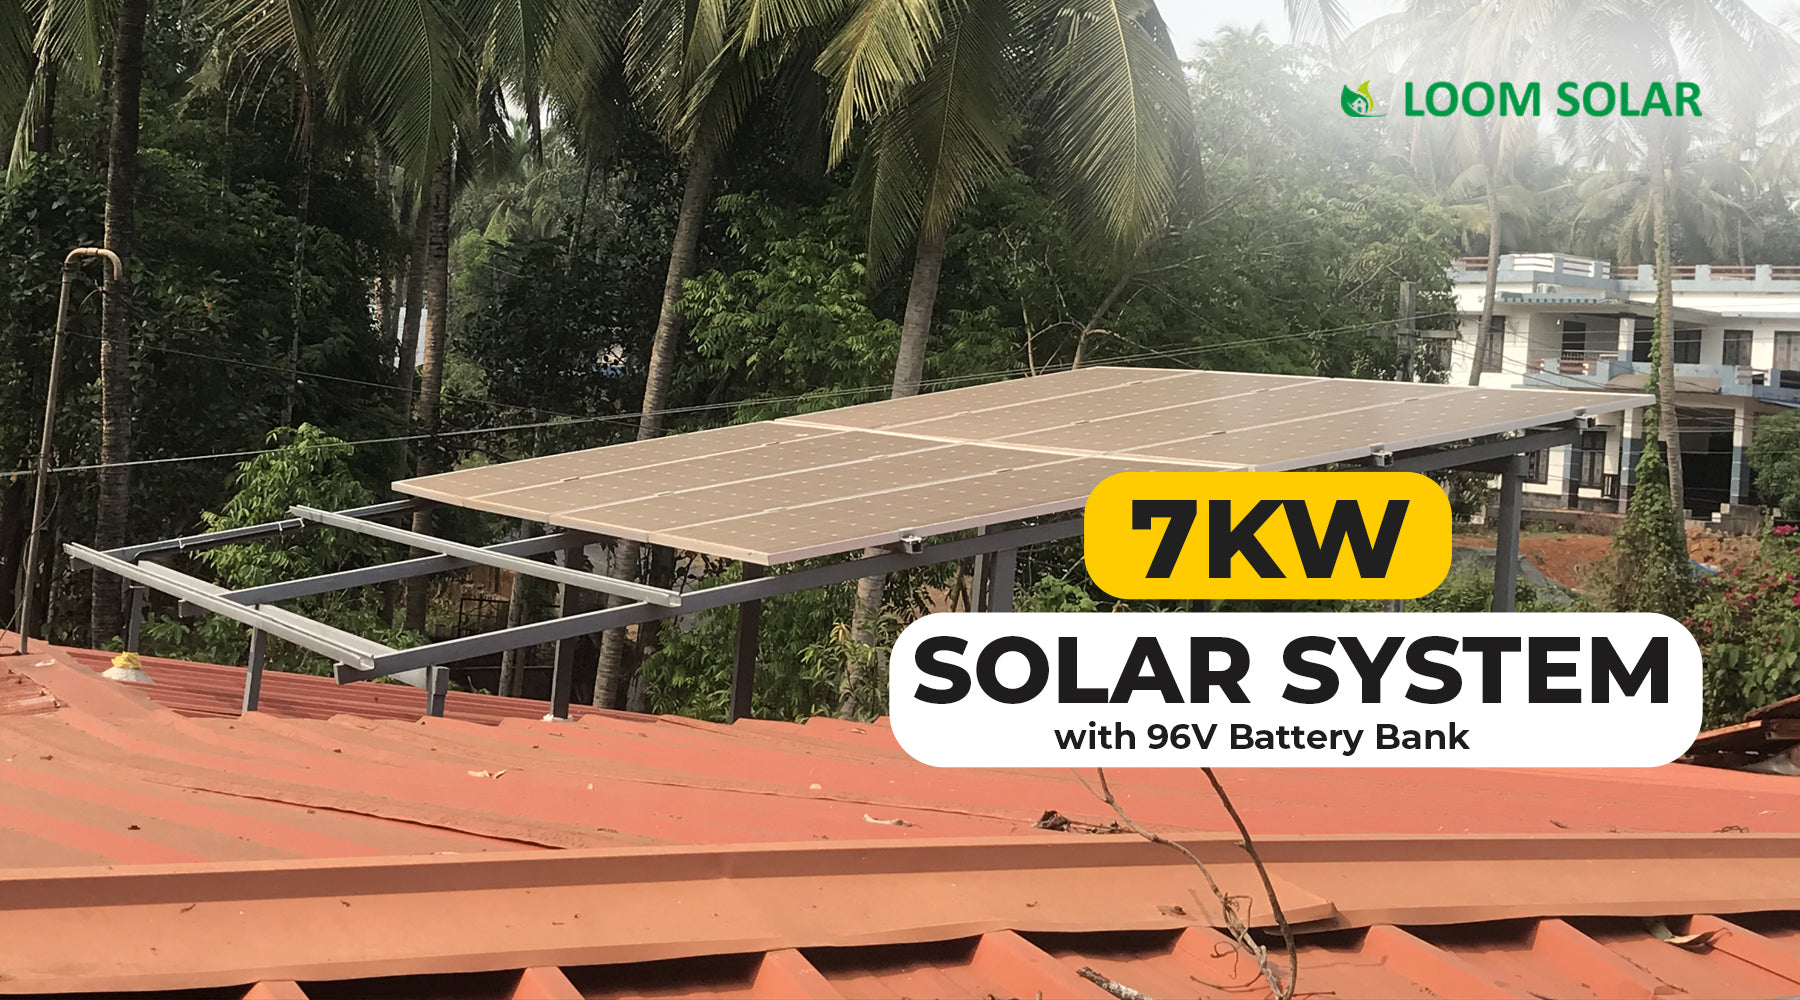 7kW Off Grid Solar System Price in India, 2021